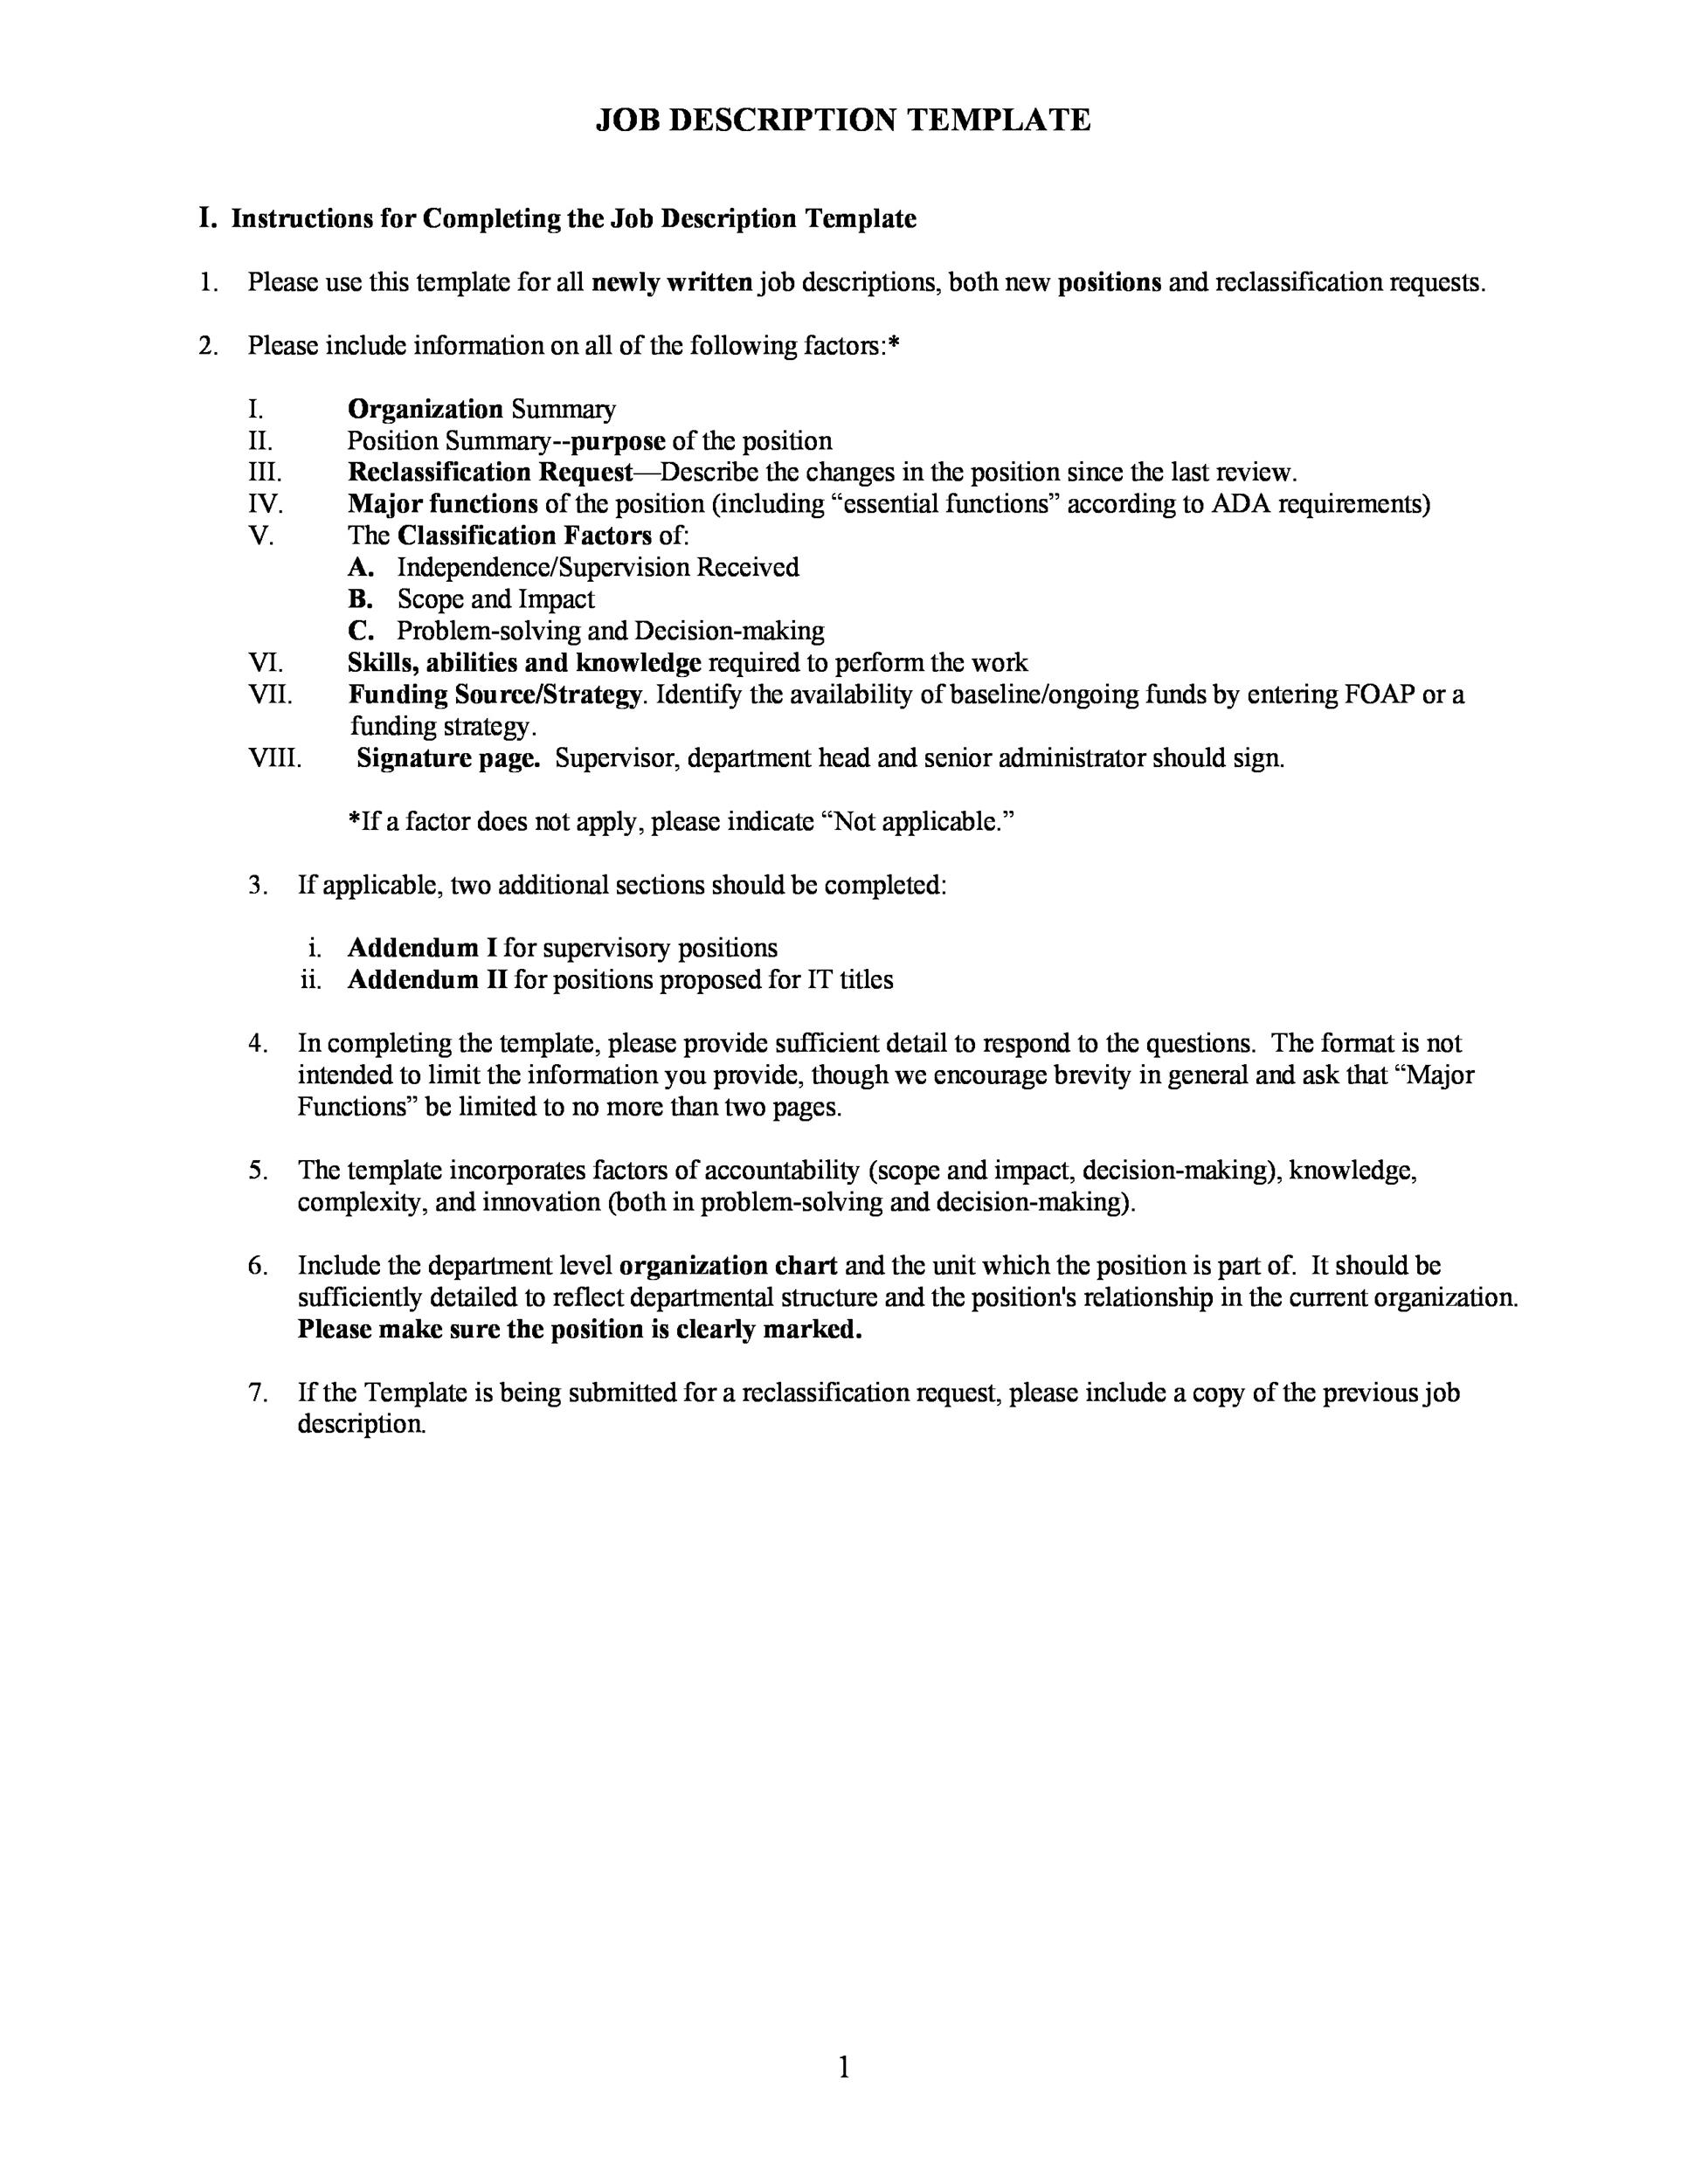 bio questionnaire template - 47 job description templates examples template lab